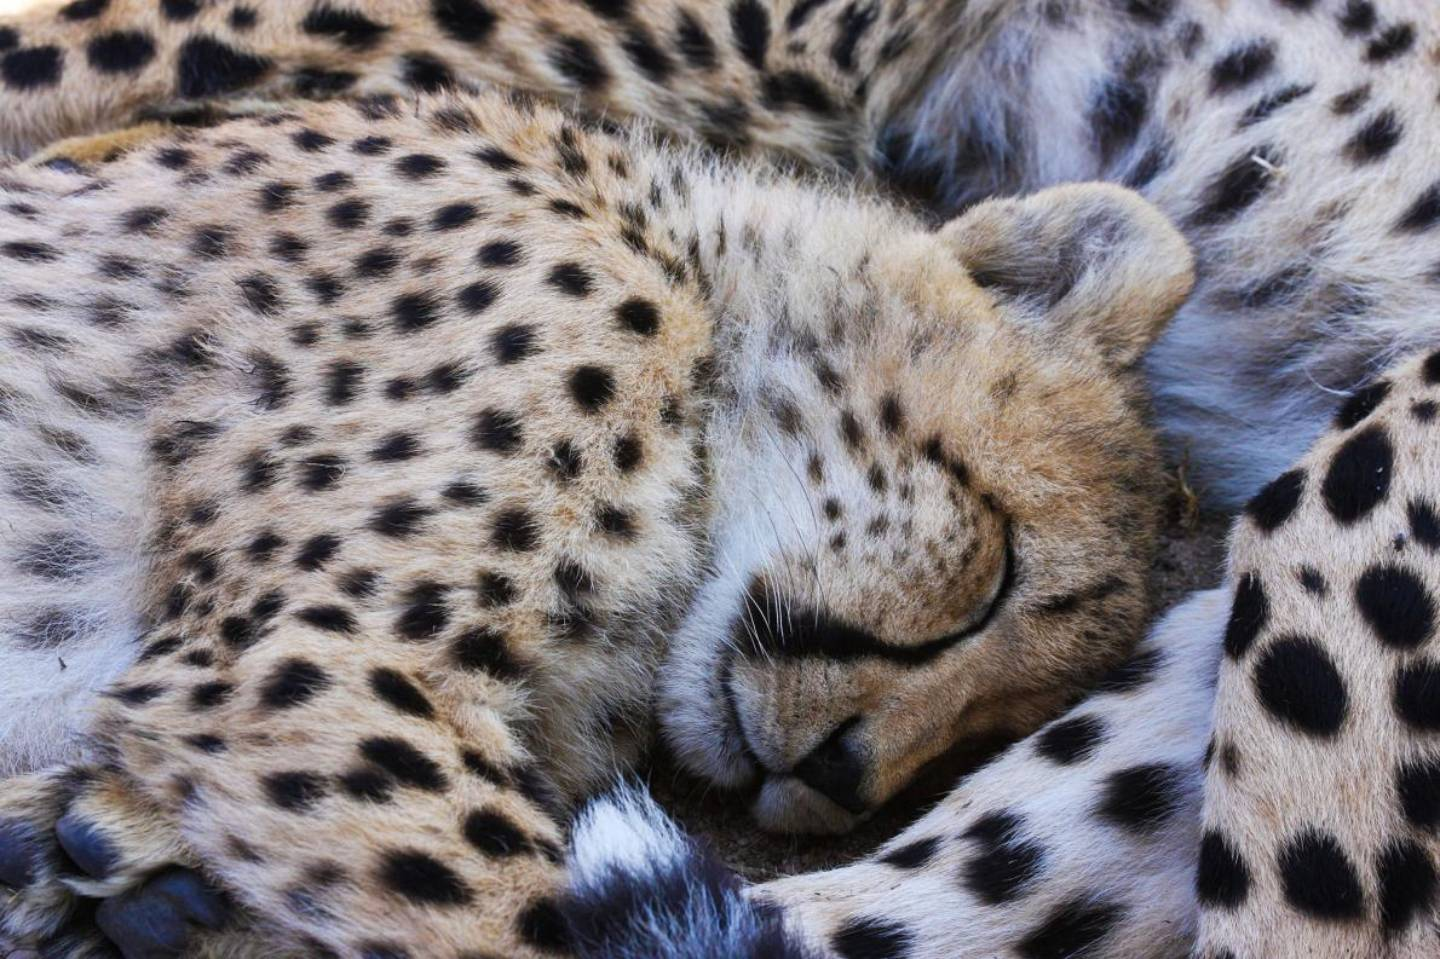 Cheetah cubs taking a nap